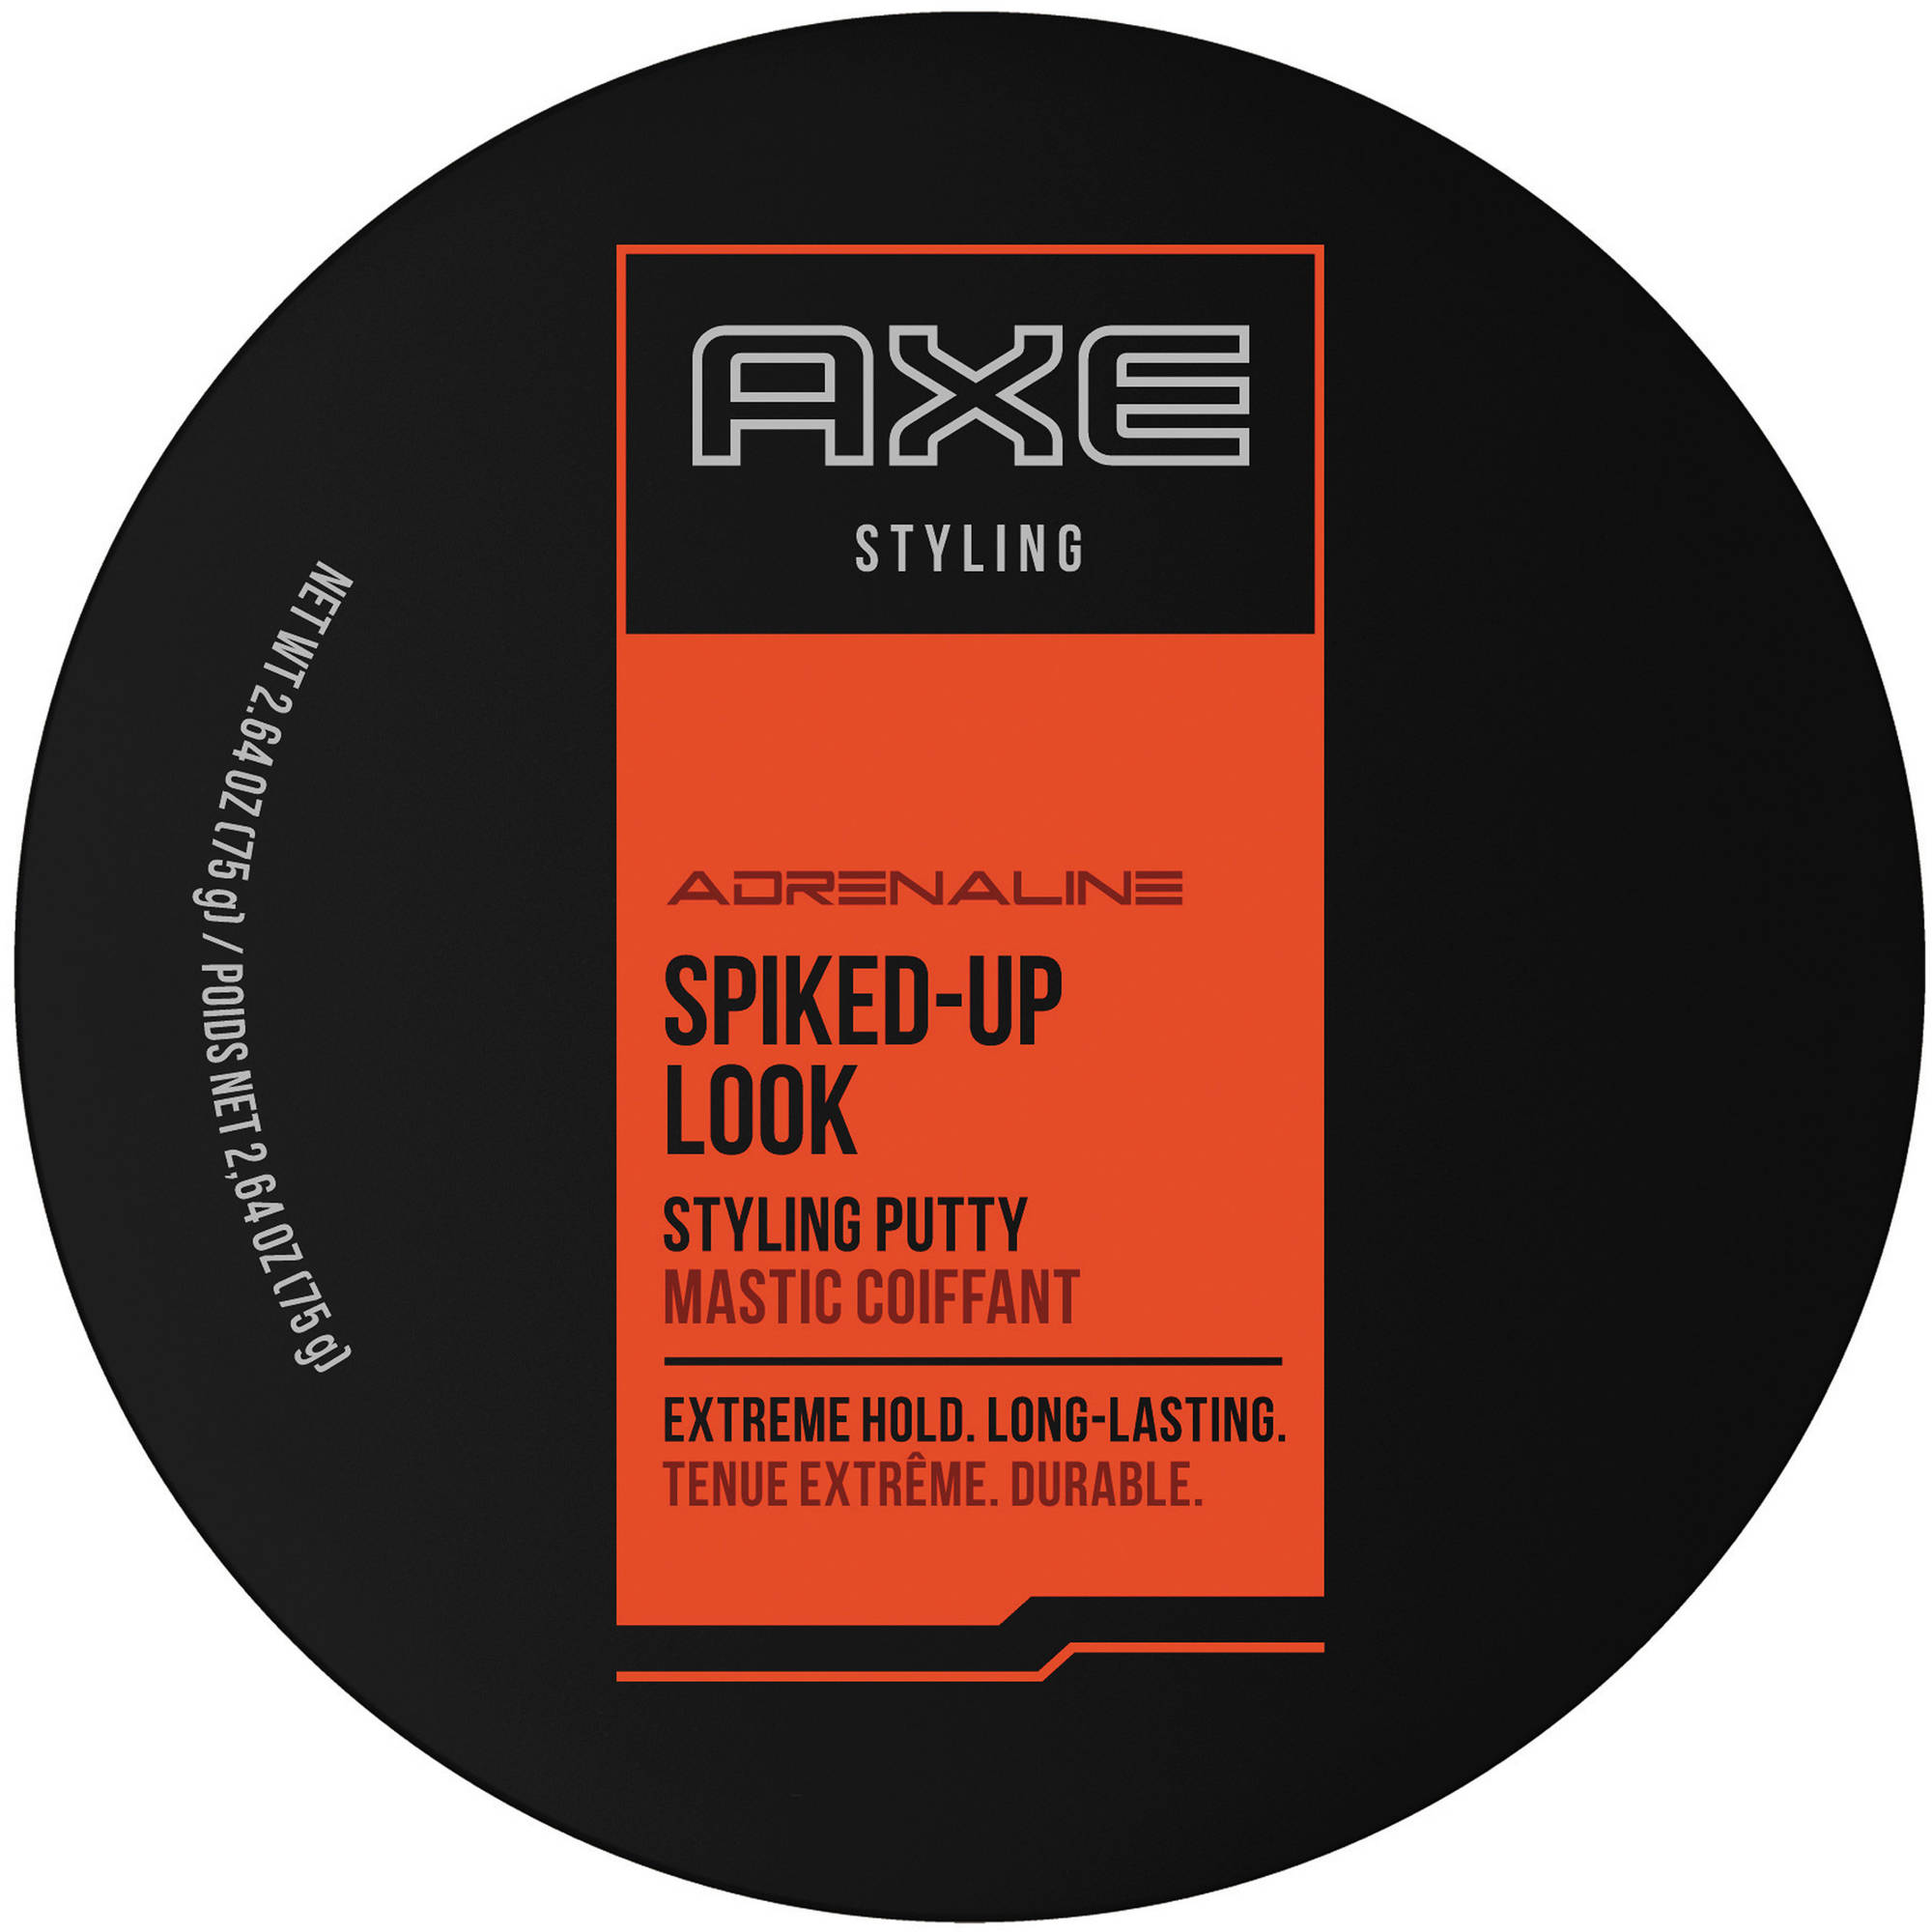 AXE Spiked Up Look Styling Putty, 2.64 oz